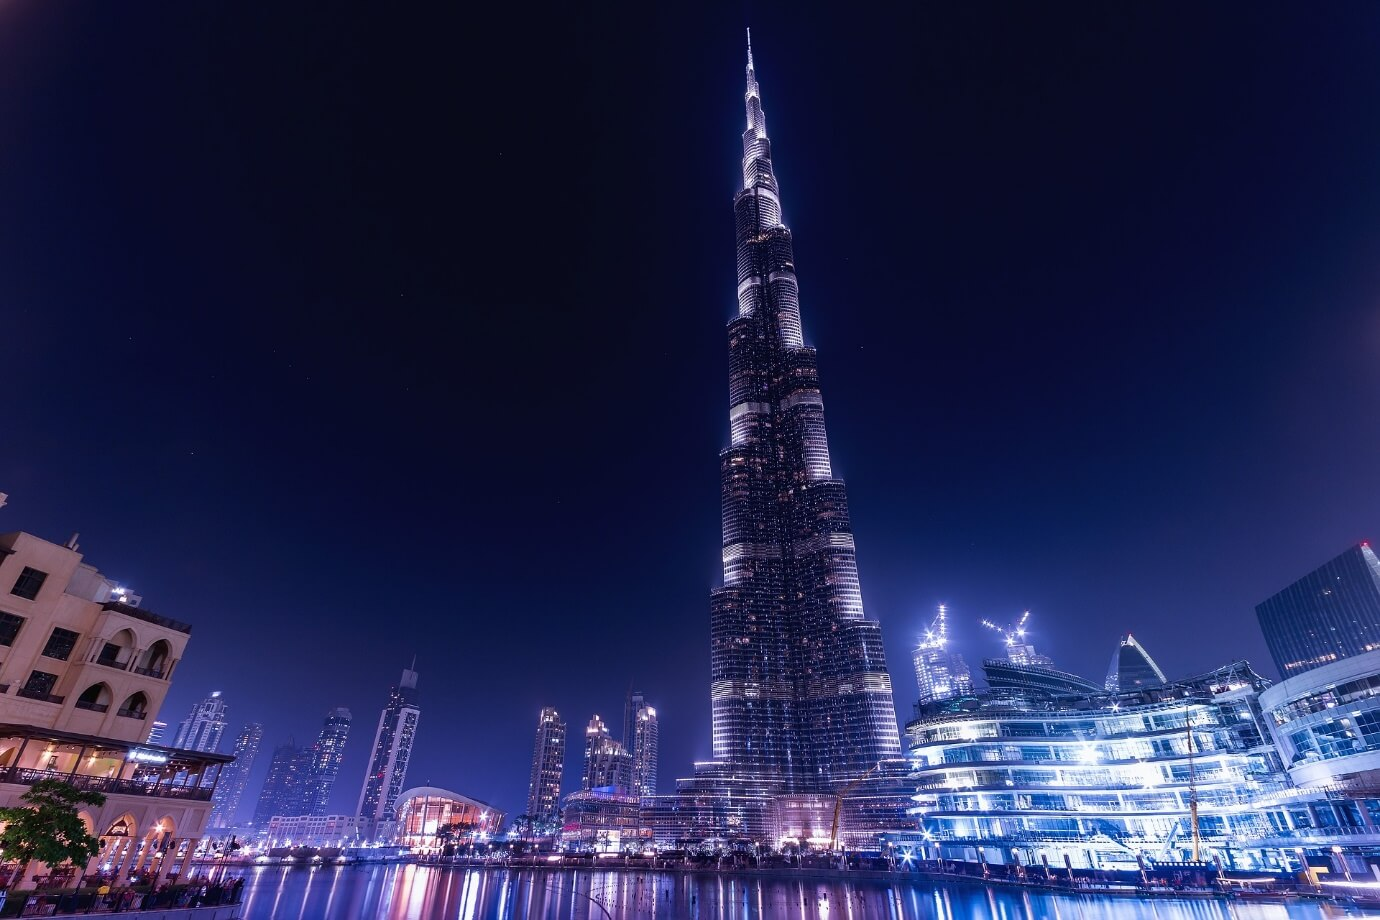 burj-khalifa-dubai-things-to-do.jpeg